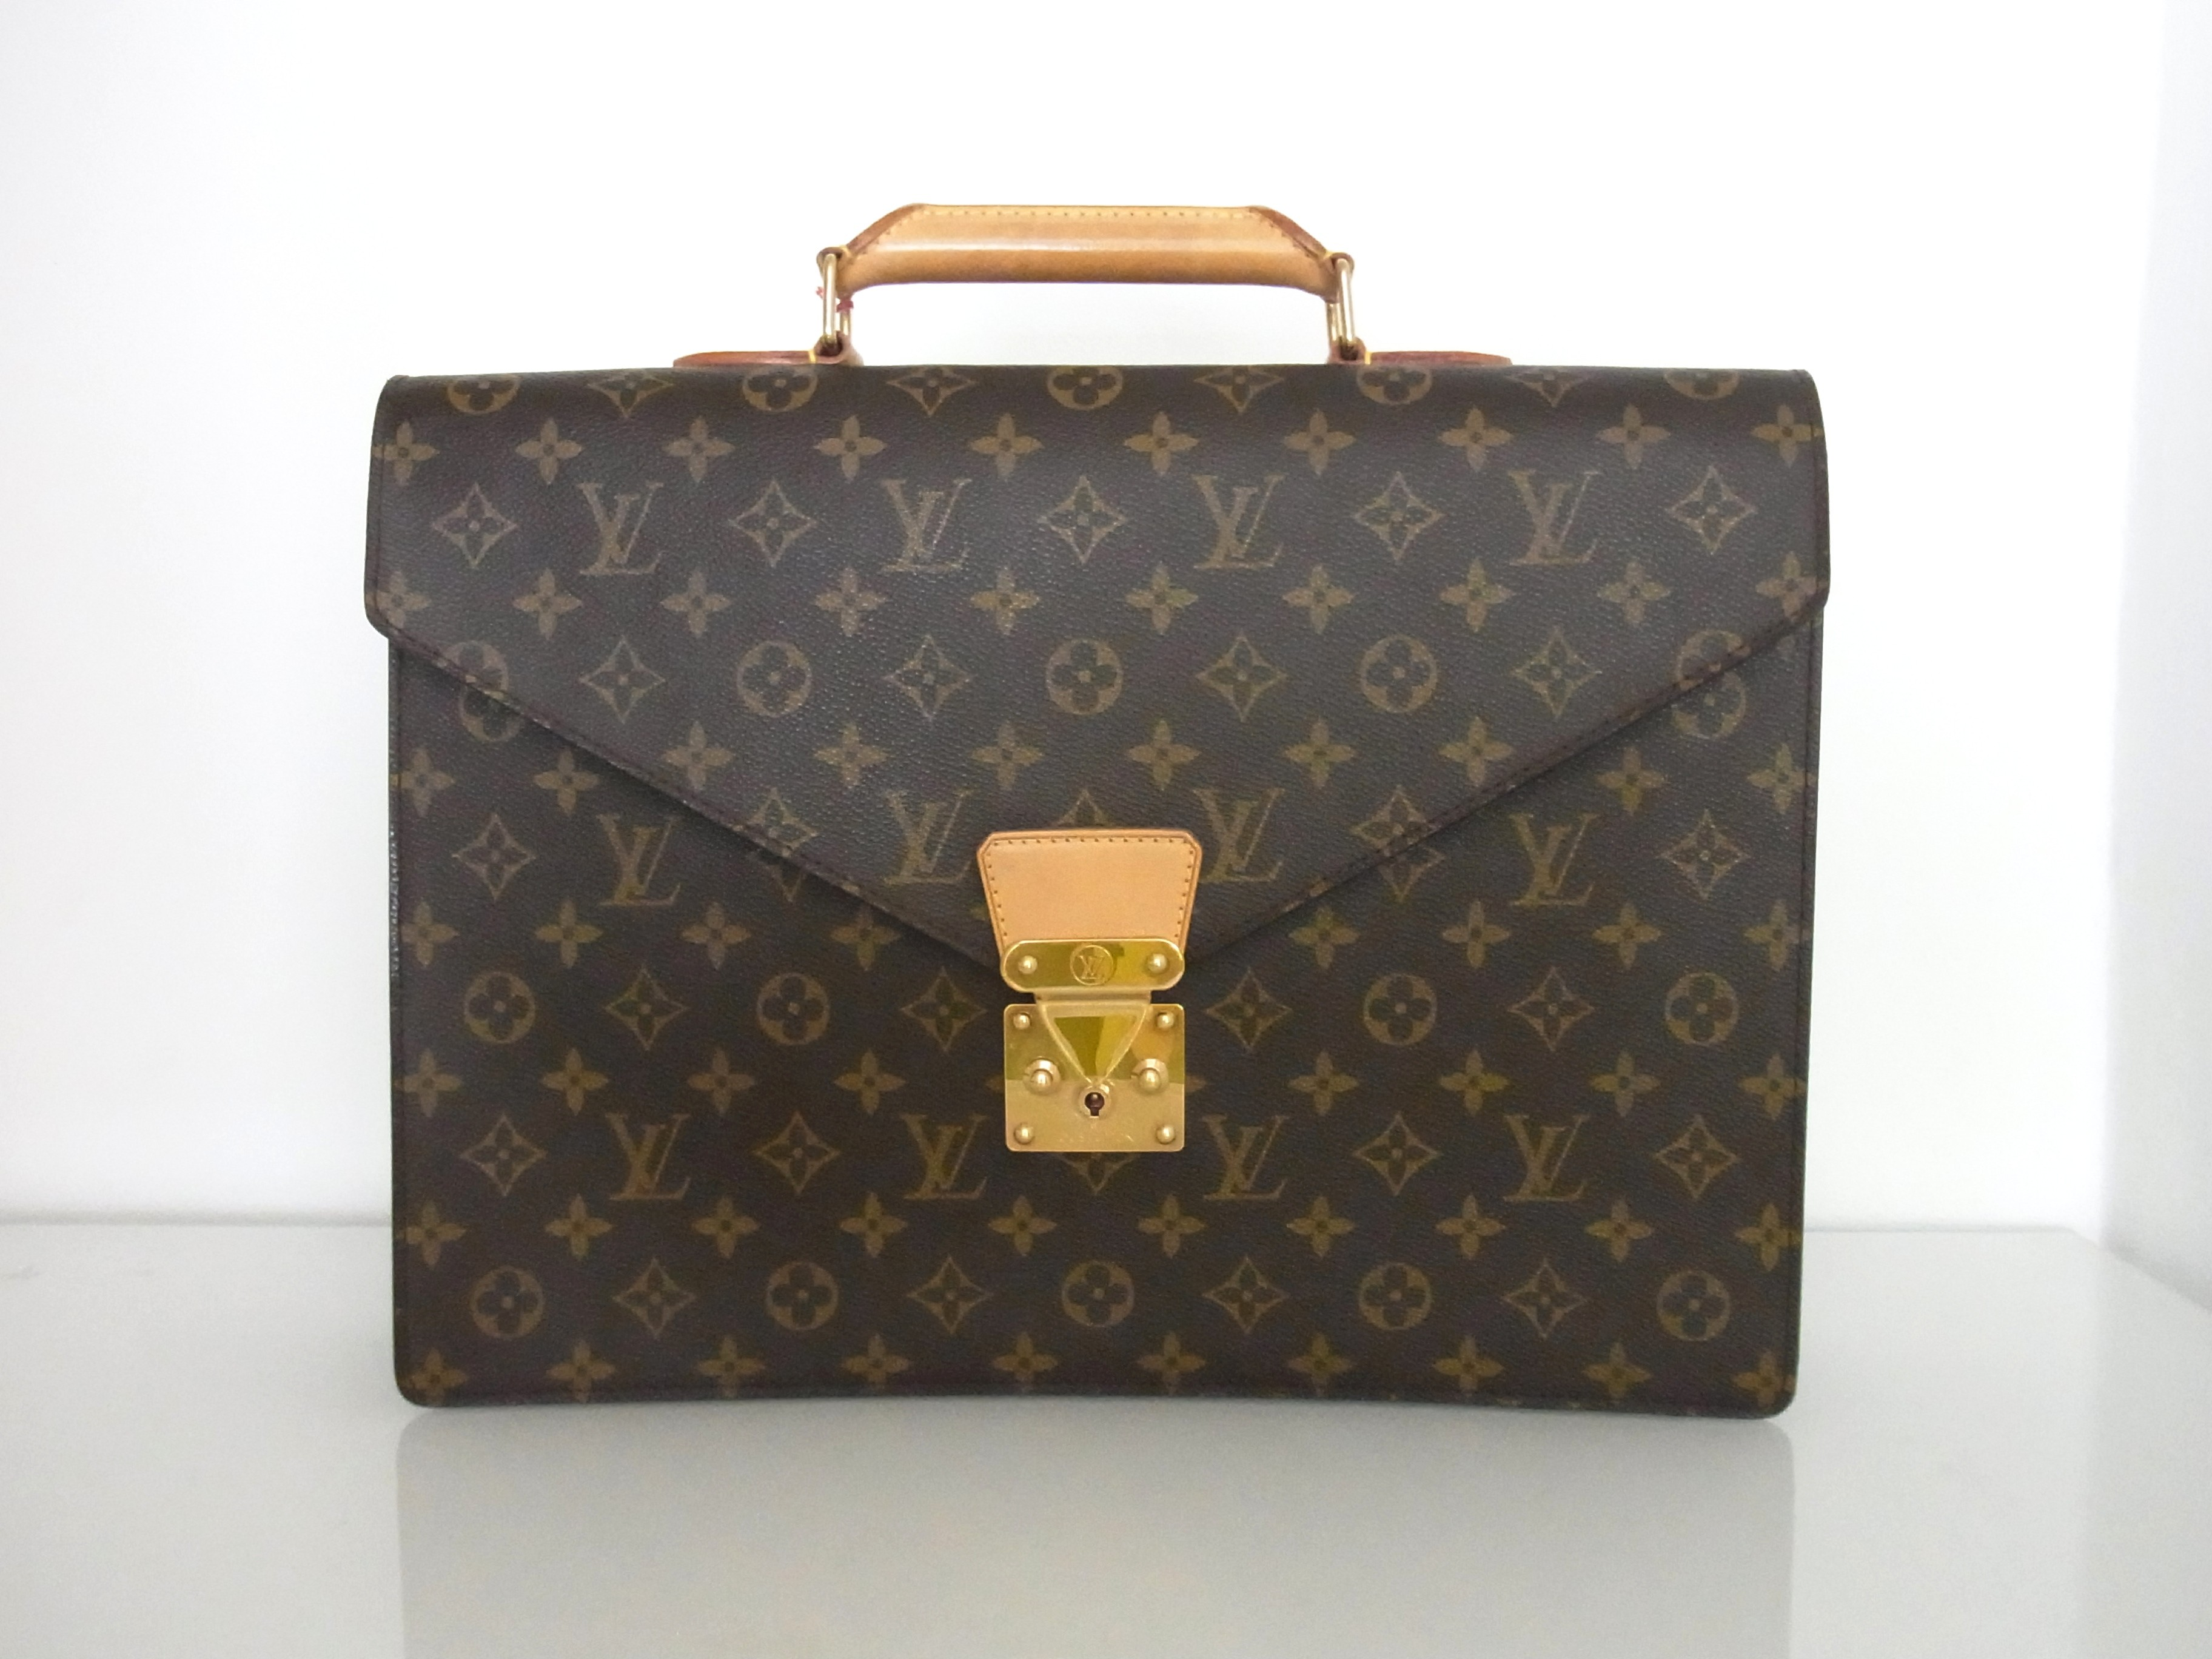 louis vuitton aktentasche monogram canvas luxini hamburg luxus uhren schmuck service. Black Bedroom Furniture Sets. Home Design Ideas